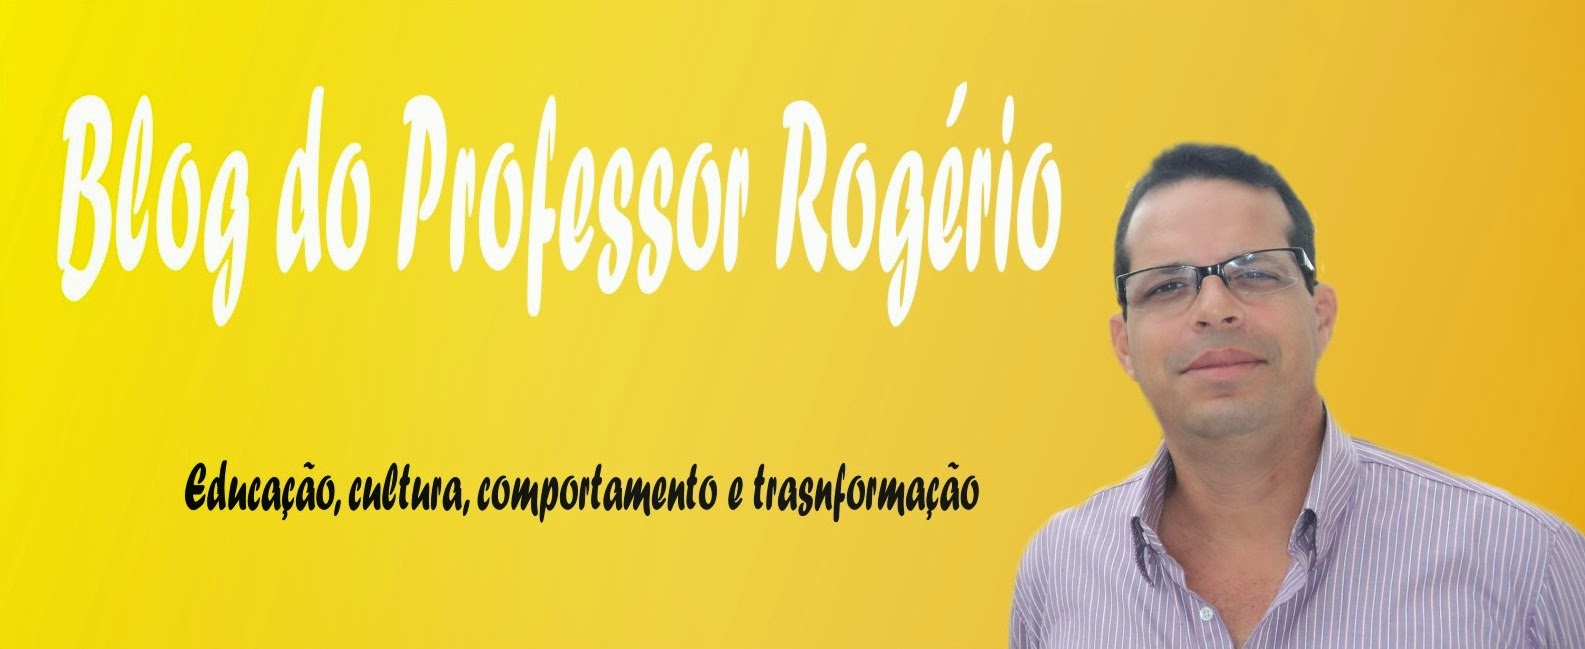 Blog do Professor Rogério